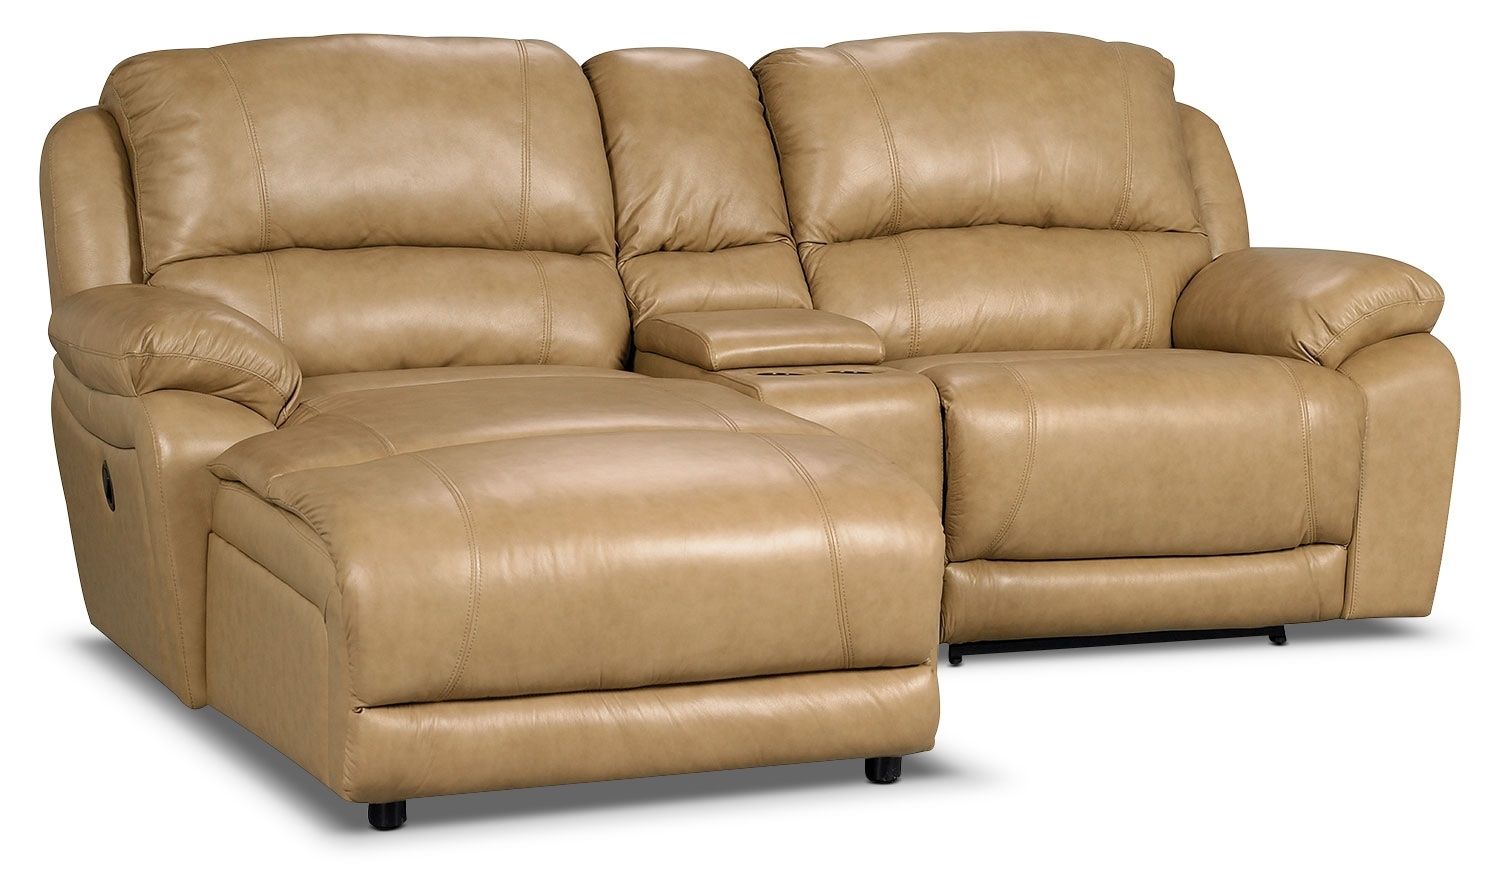 Living Room Furniture - Marco Genuine Leather 3-Piece Sectional with Chaise, Power Recliner and Console– Toffee